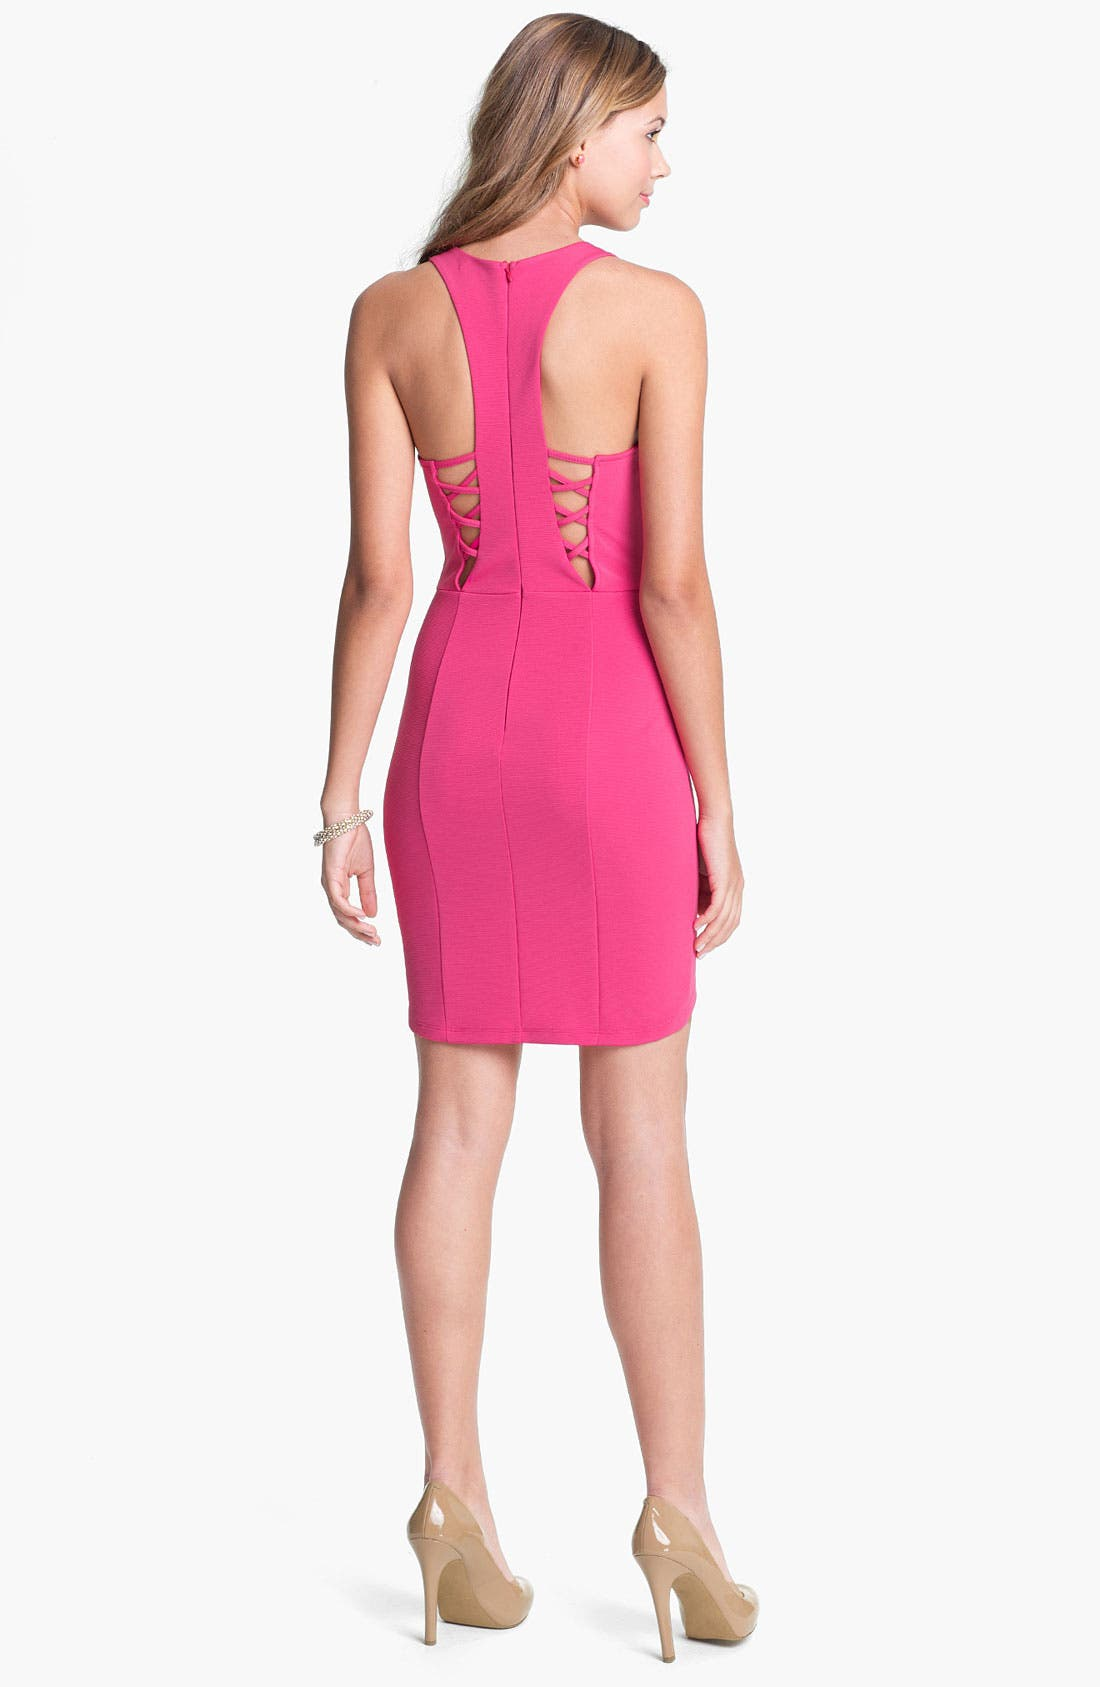 Alternate Image 1 Selected - Lush Racerback Tank Dress (Juniors)